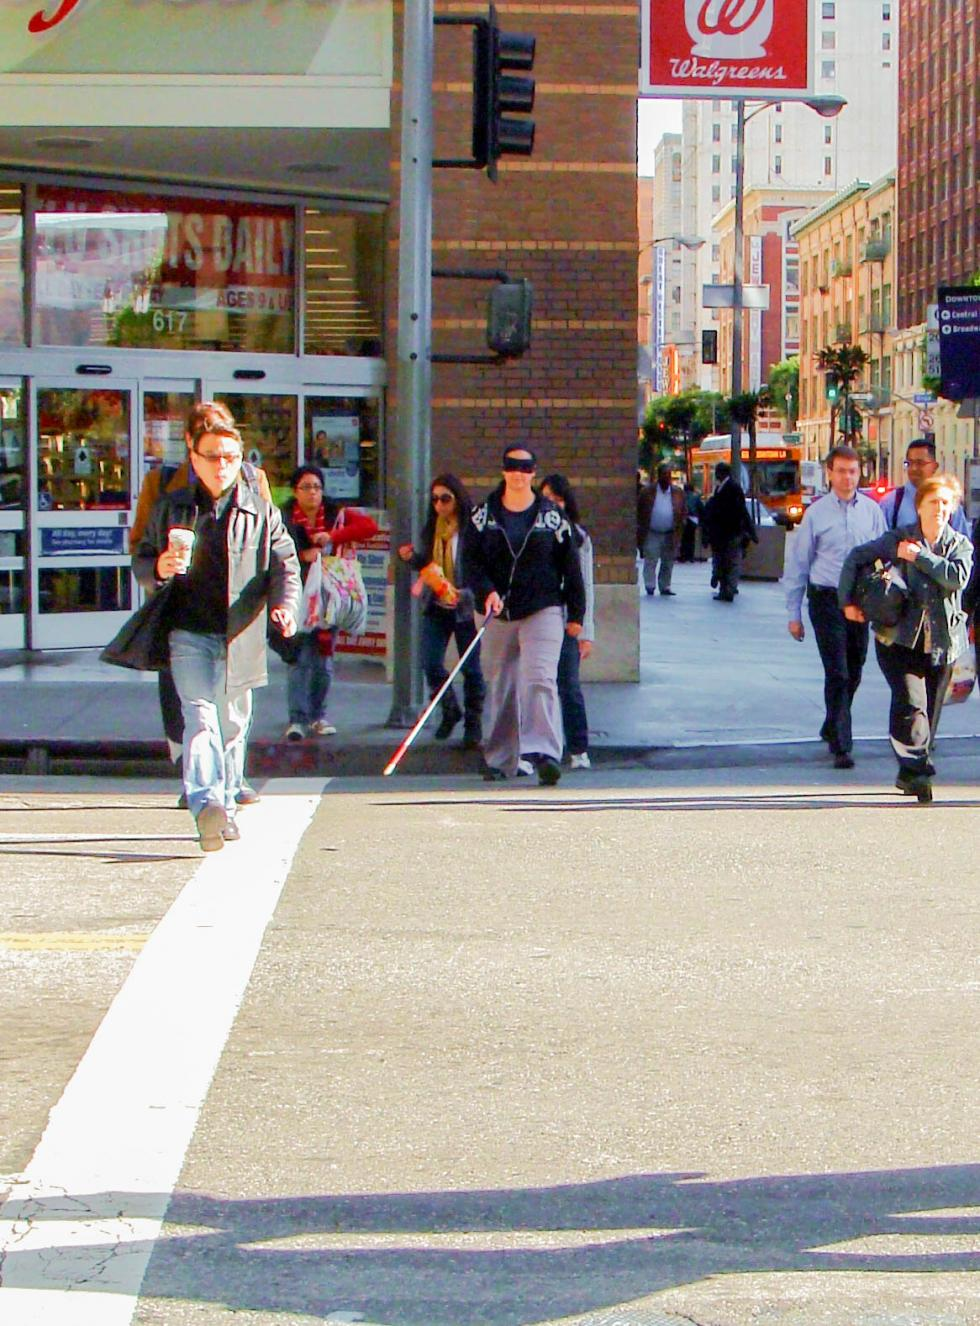 2011 Cal State LA students practice simulated travel in downtown LA – pictured Tamar Tashjian crossing the street amidst pedestrians, using her long cane